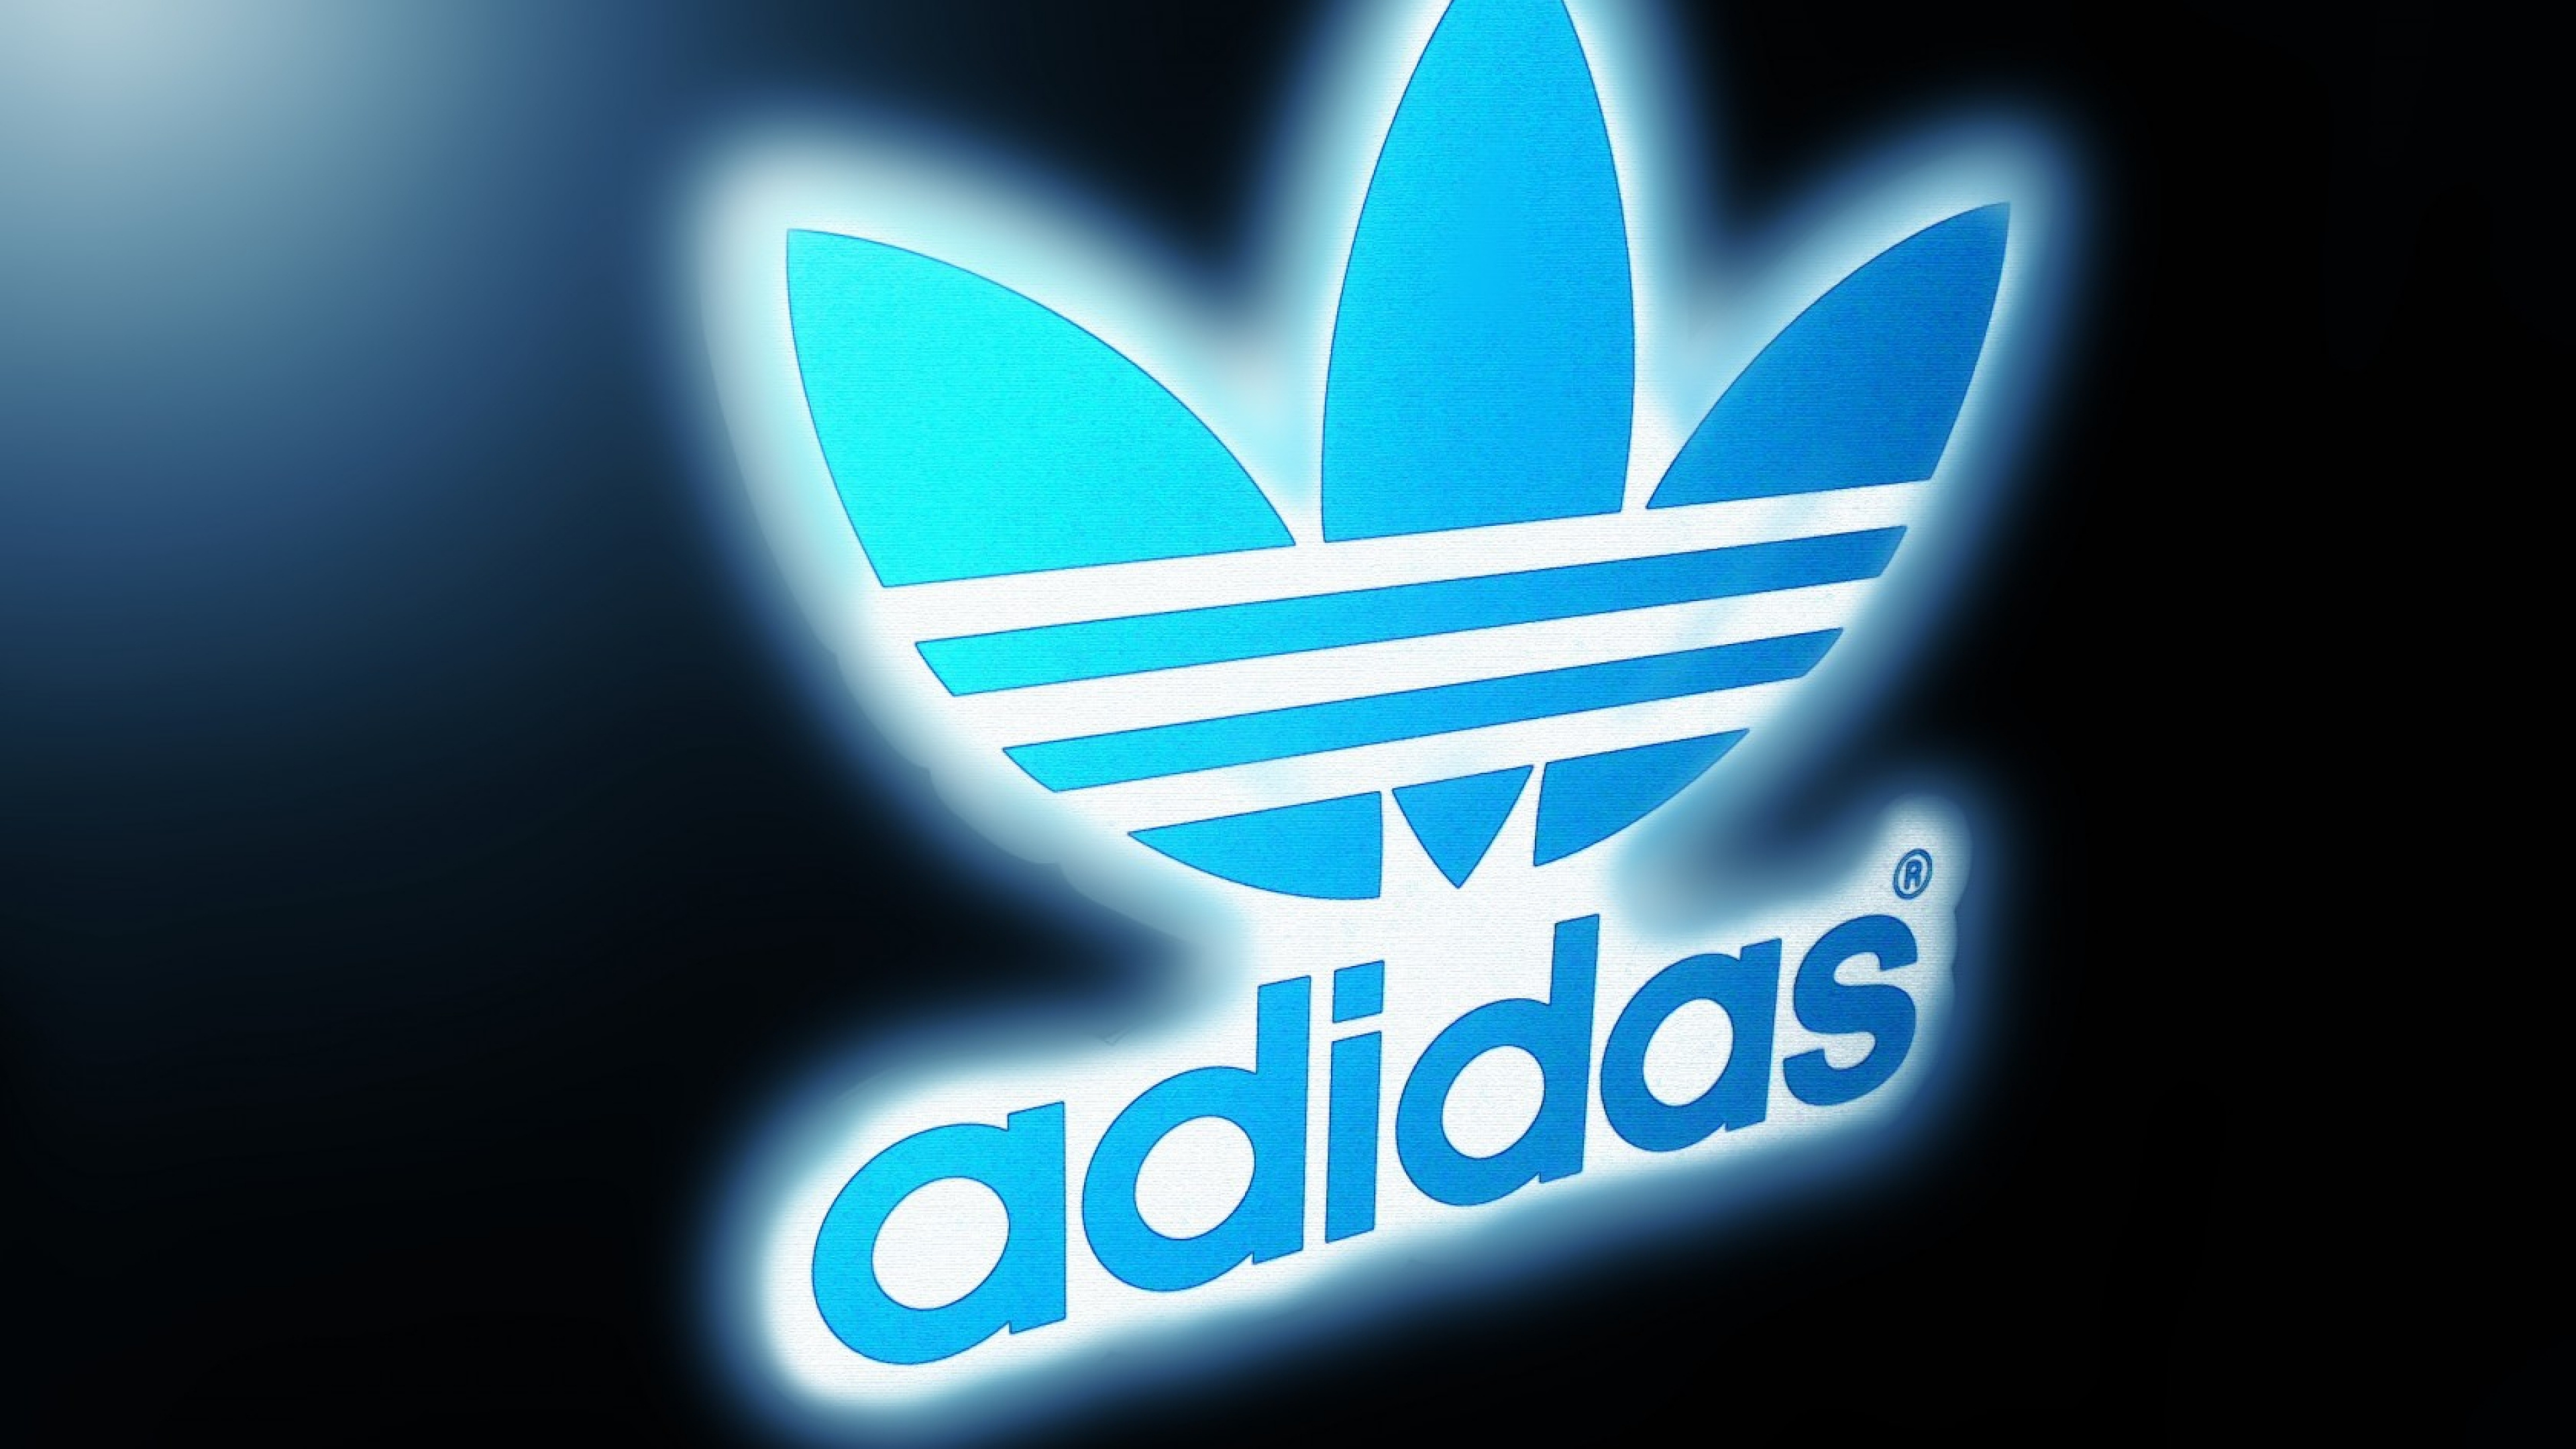 Adidas Wallpapers High Quality Download 3840x2160